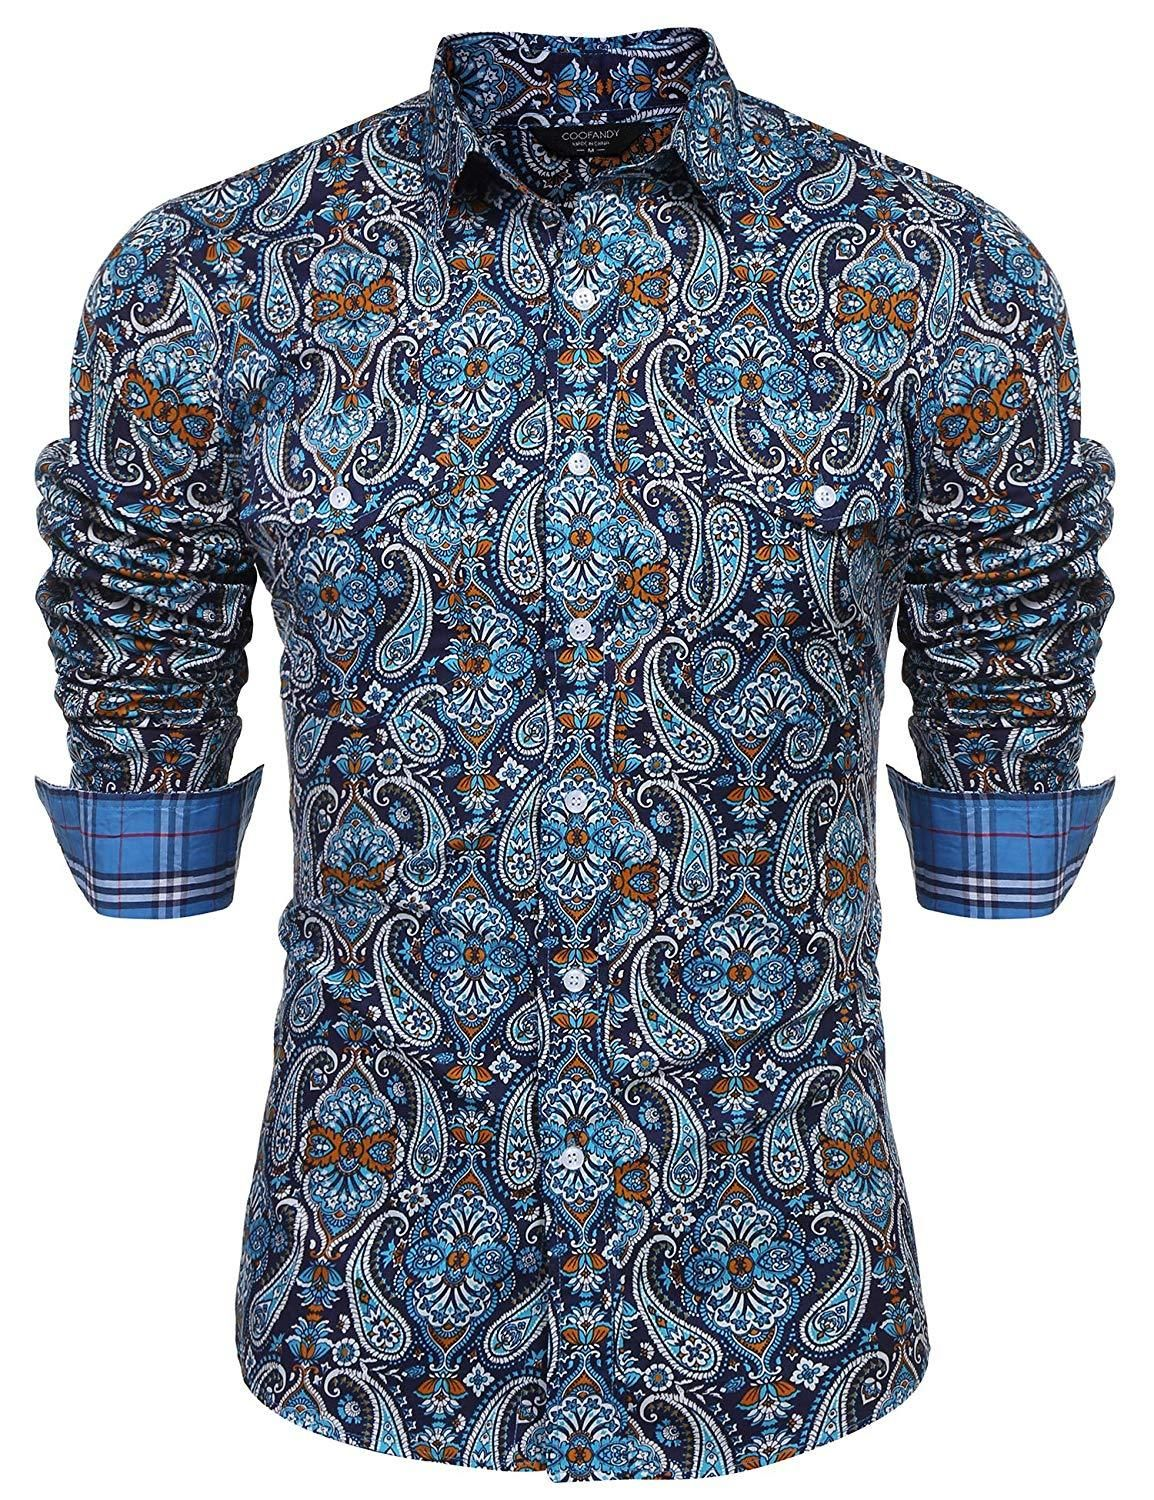 39e66a15a494 COOFANDY Men's Floral Dress Shirt Slim Fit Casual Paisley Printed ...